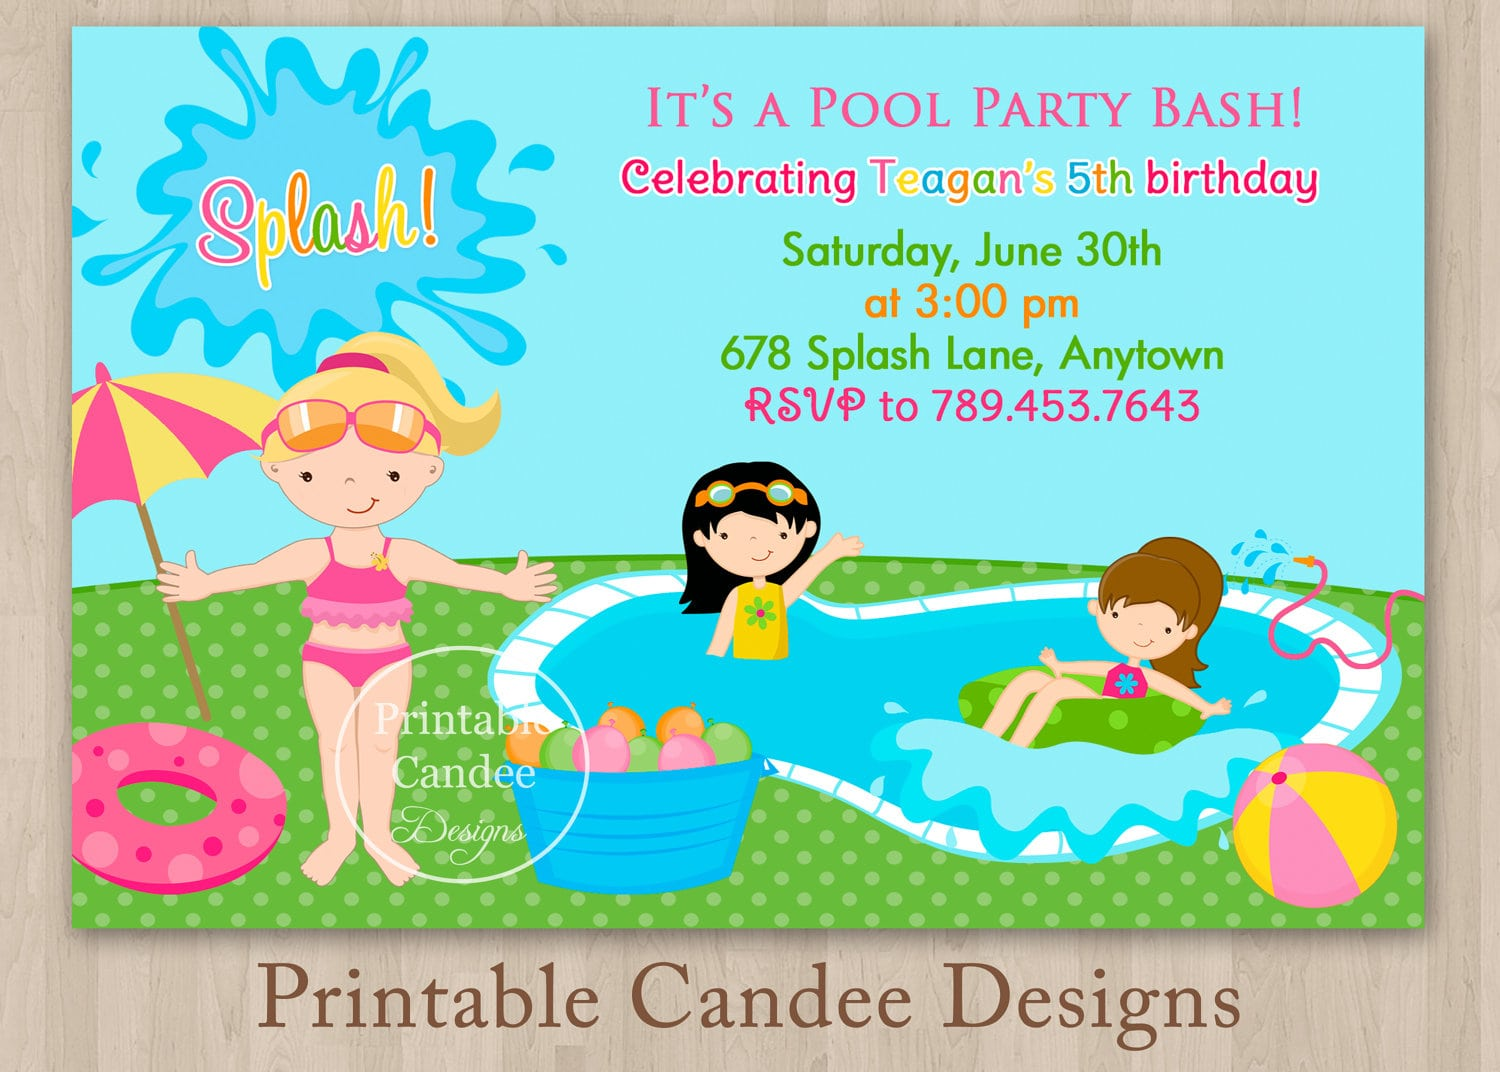 Pool Party Invite Template Free from www.itbof.com